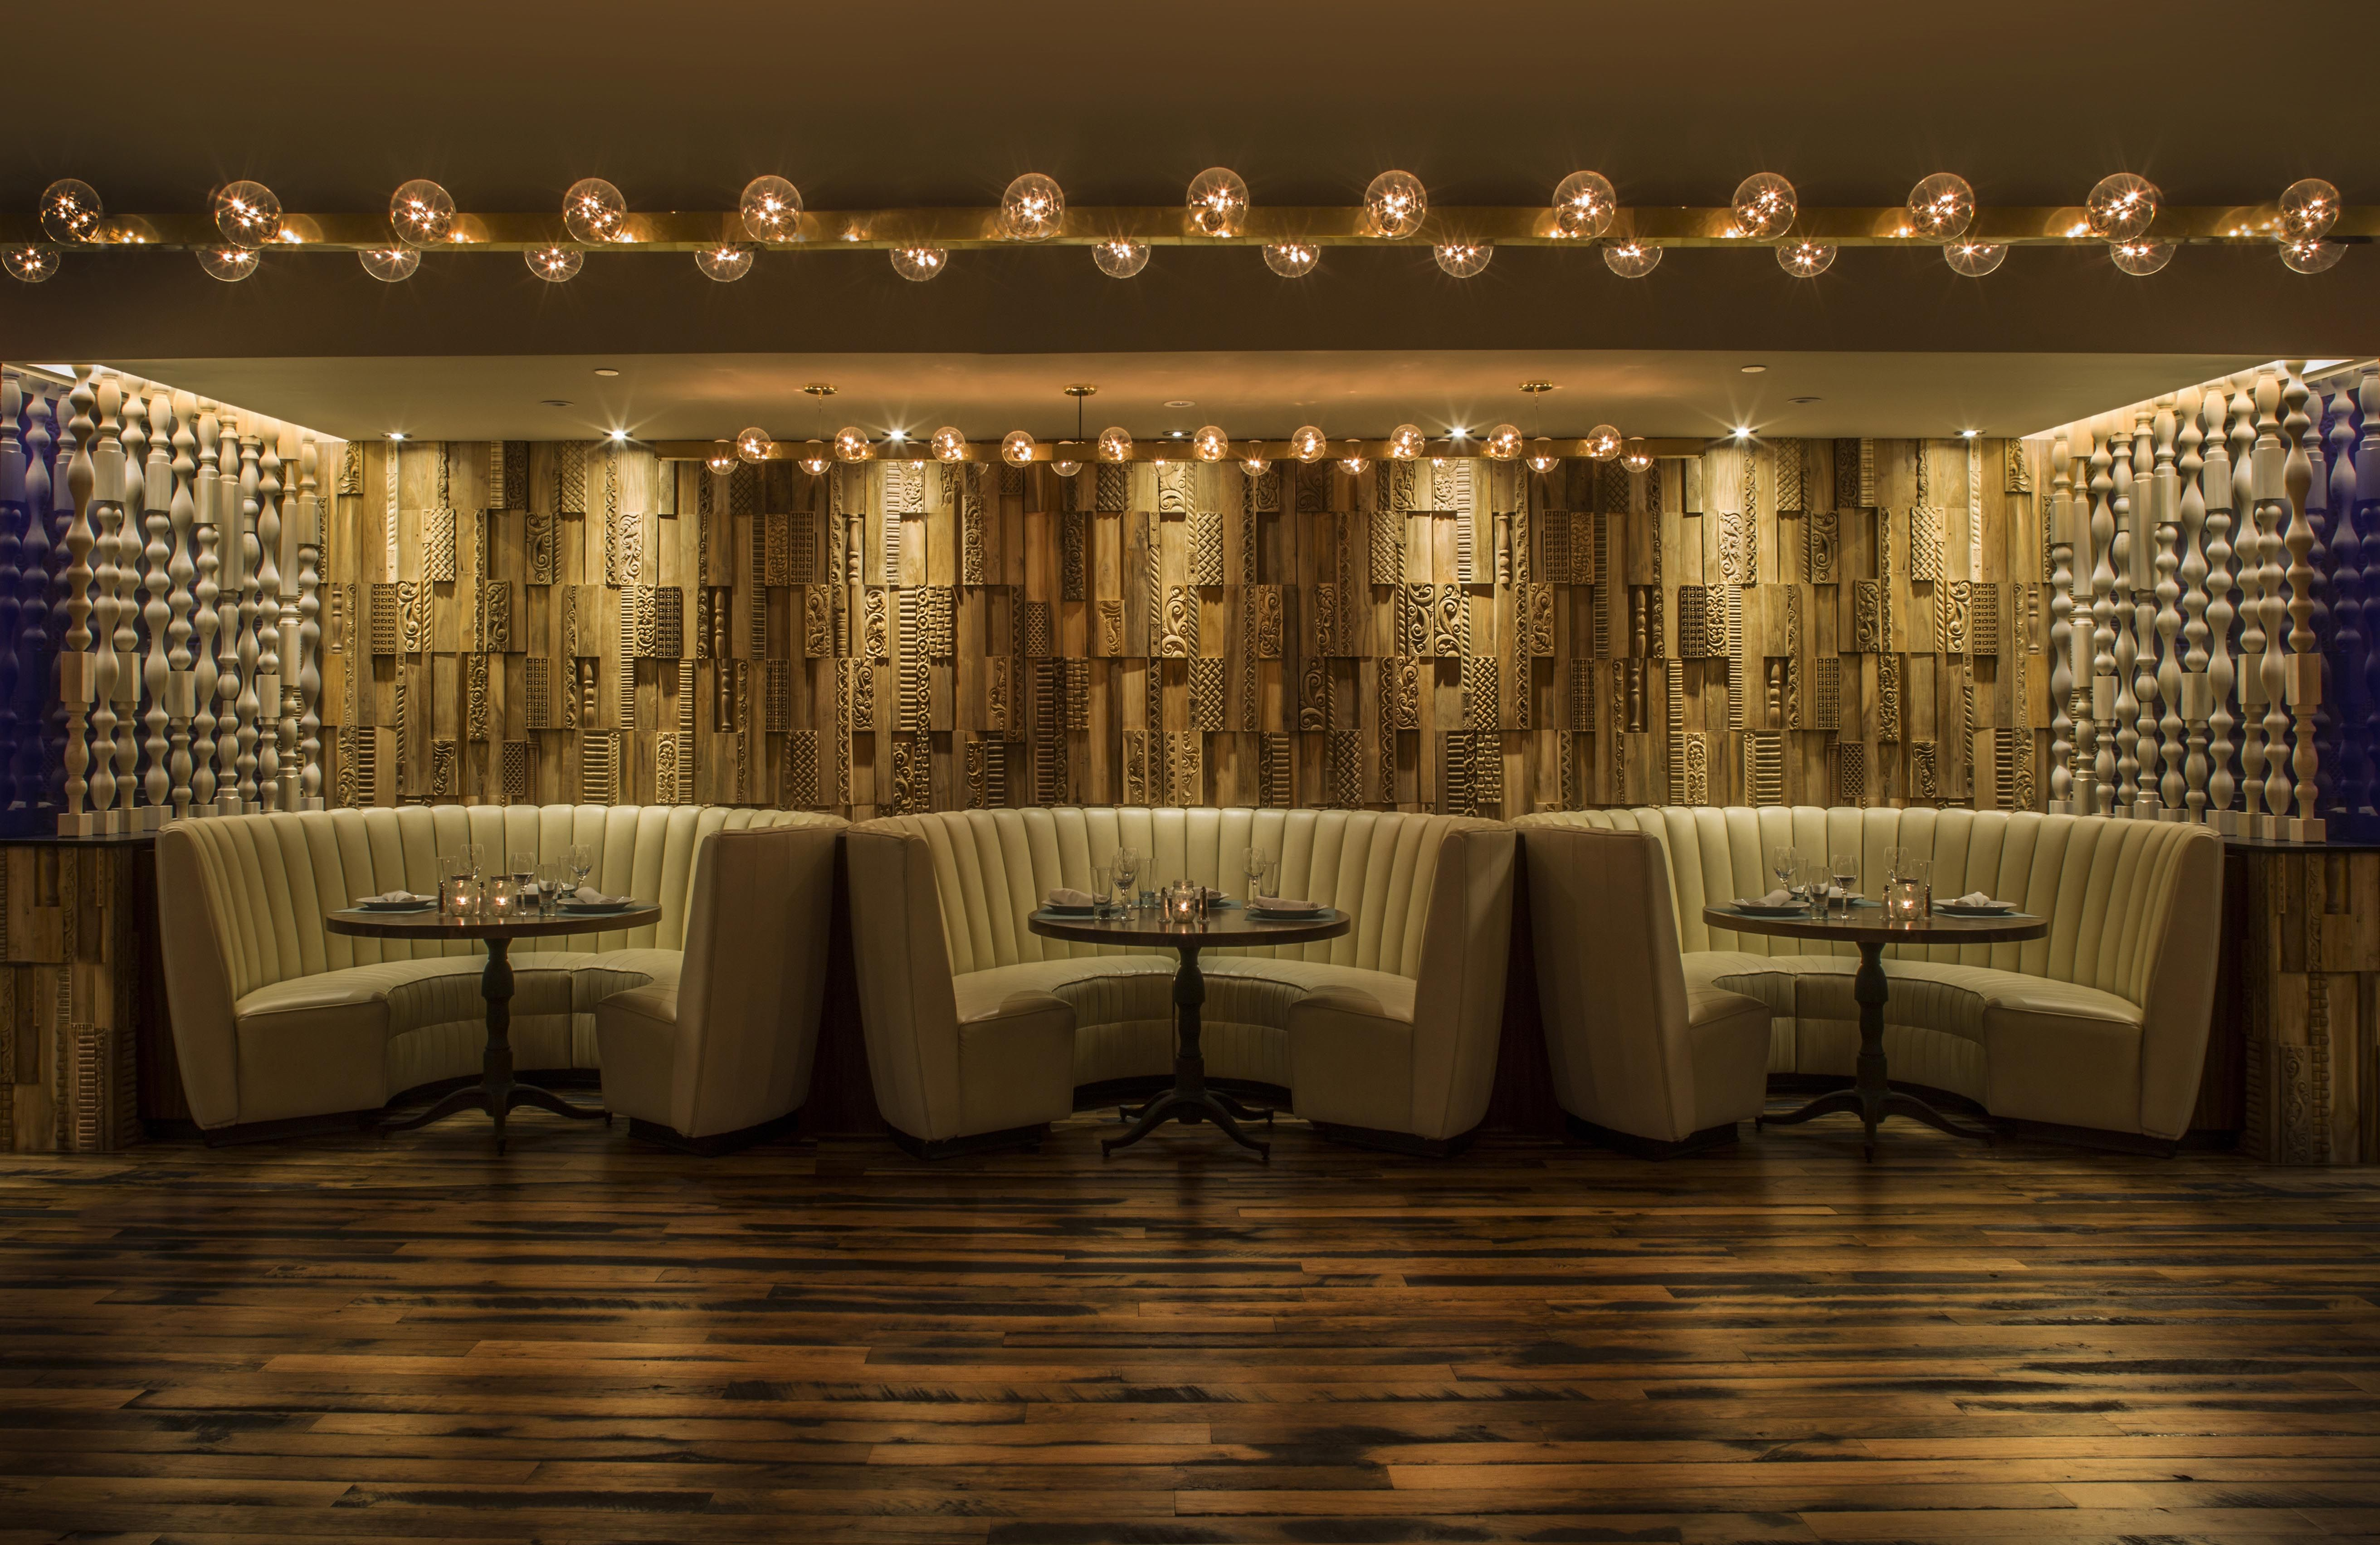 Eclectic vibes with our handcarved phoenix panels at the hard rock hotel palm springs one of our signature projects after a killing production schedule